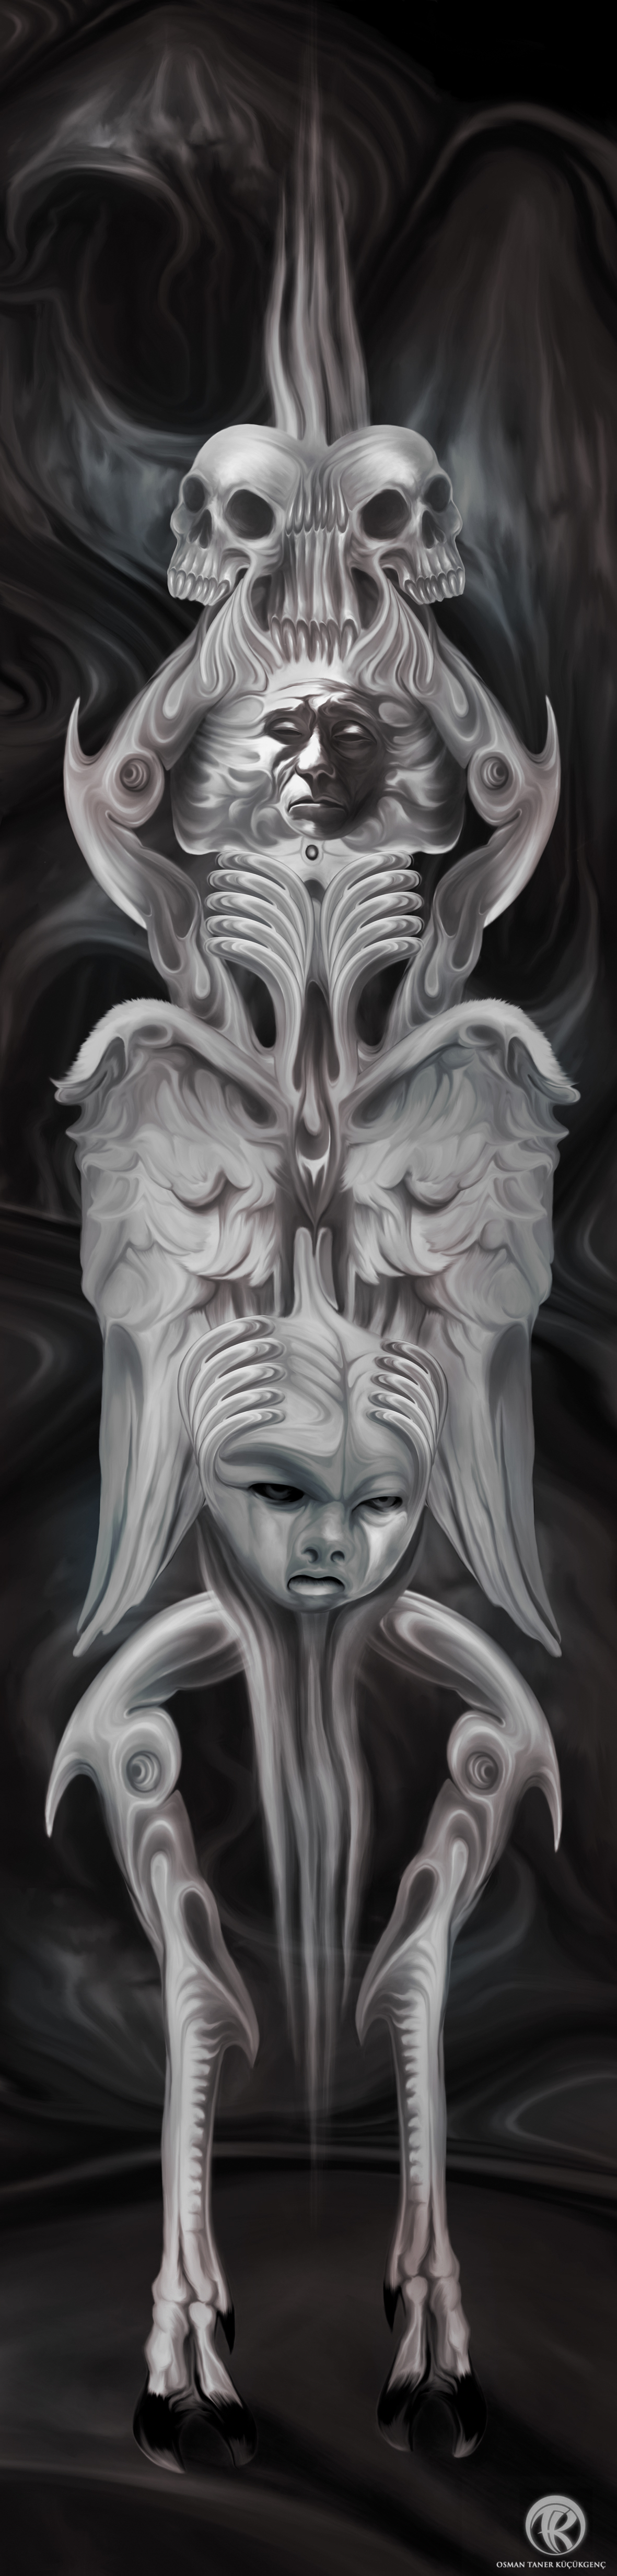 HYPNOS Dark Side - Episode 1 Digital Painting wacom intuos 5 - Photoshop CS5